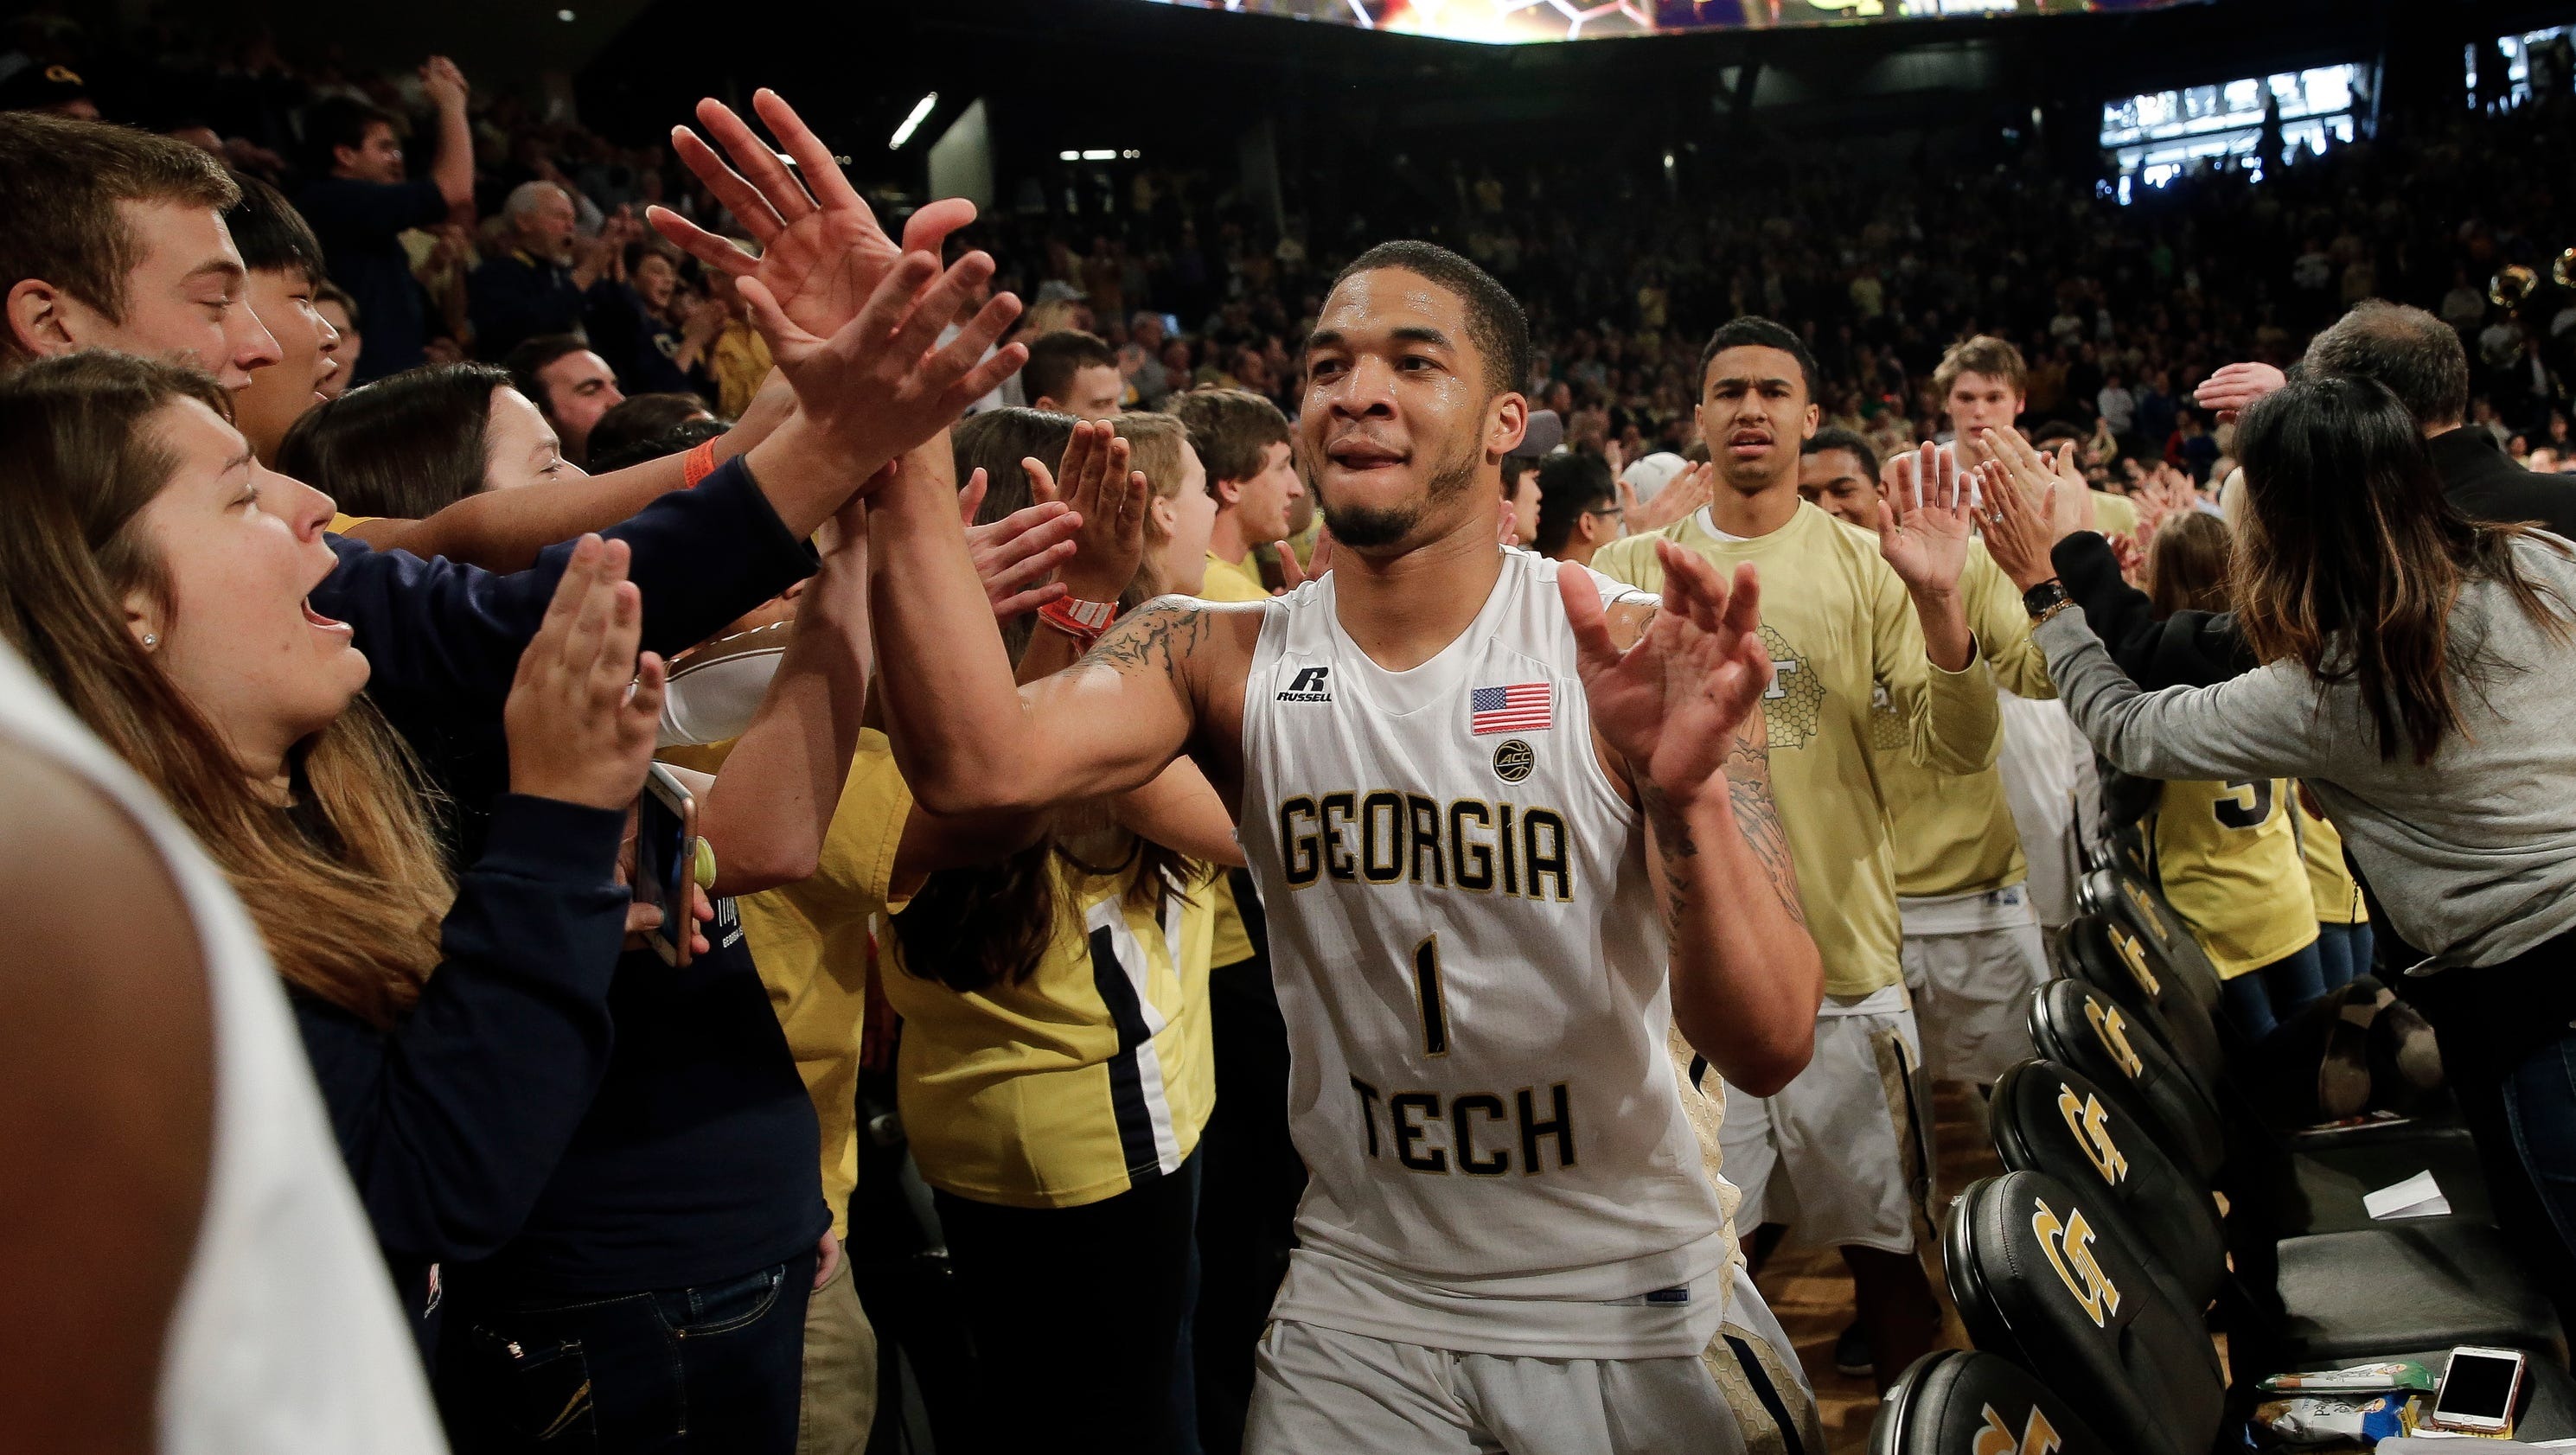 Fresh off another top-15 win, Georgia Tech looks tourney ready